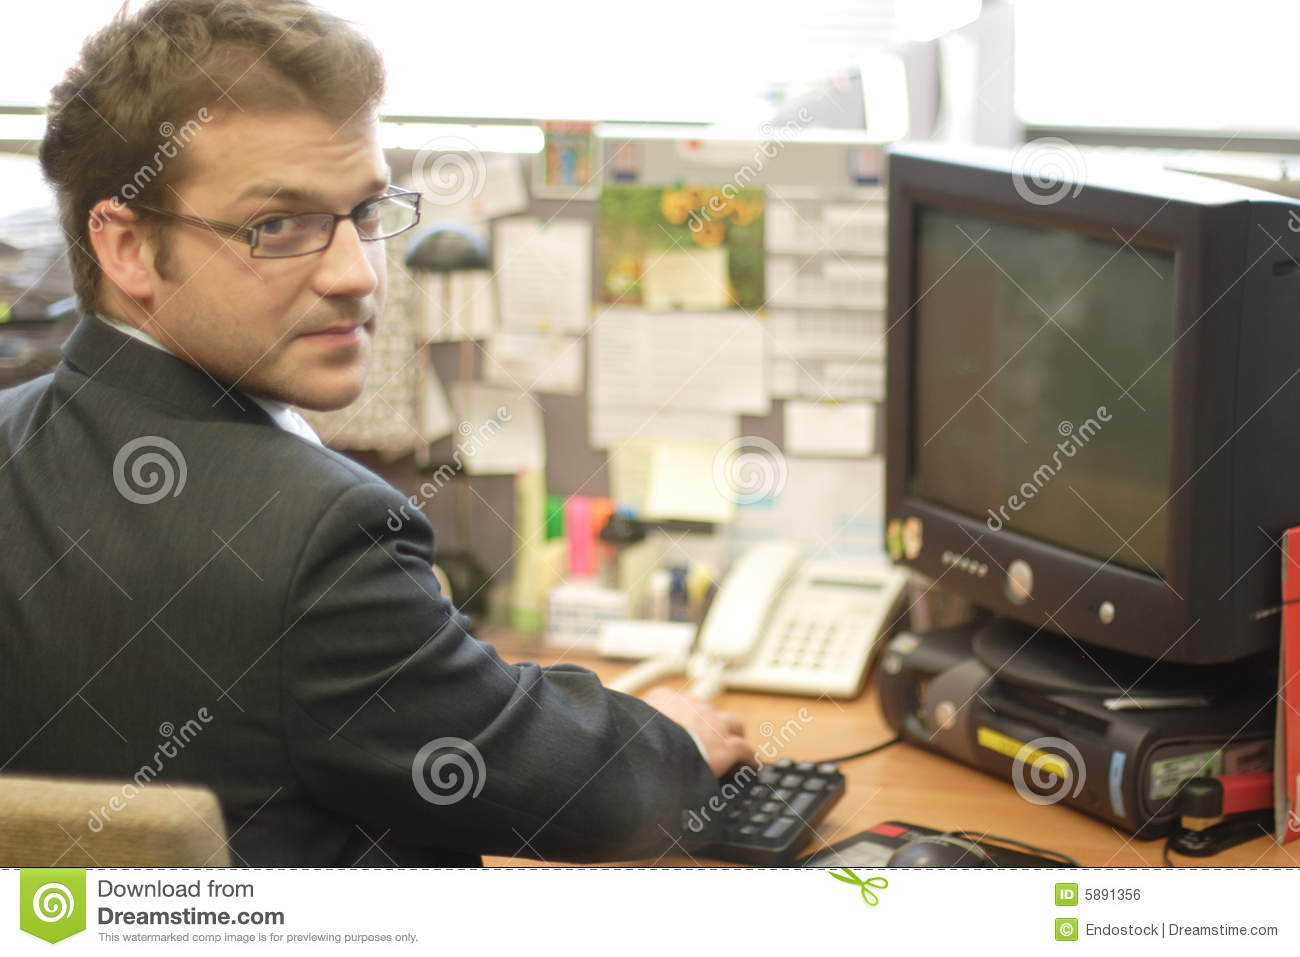 Business man and workstation